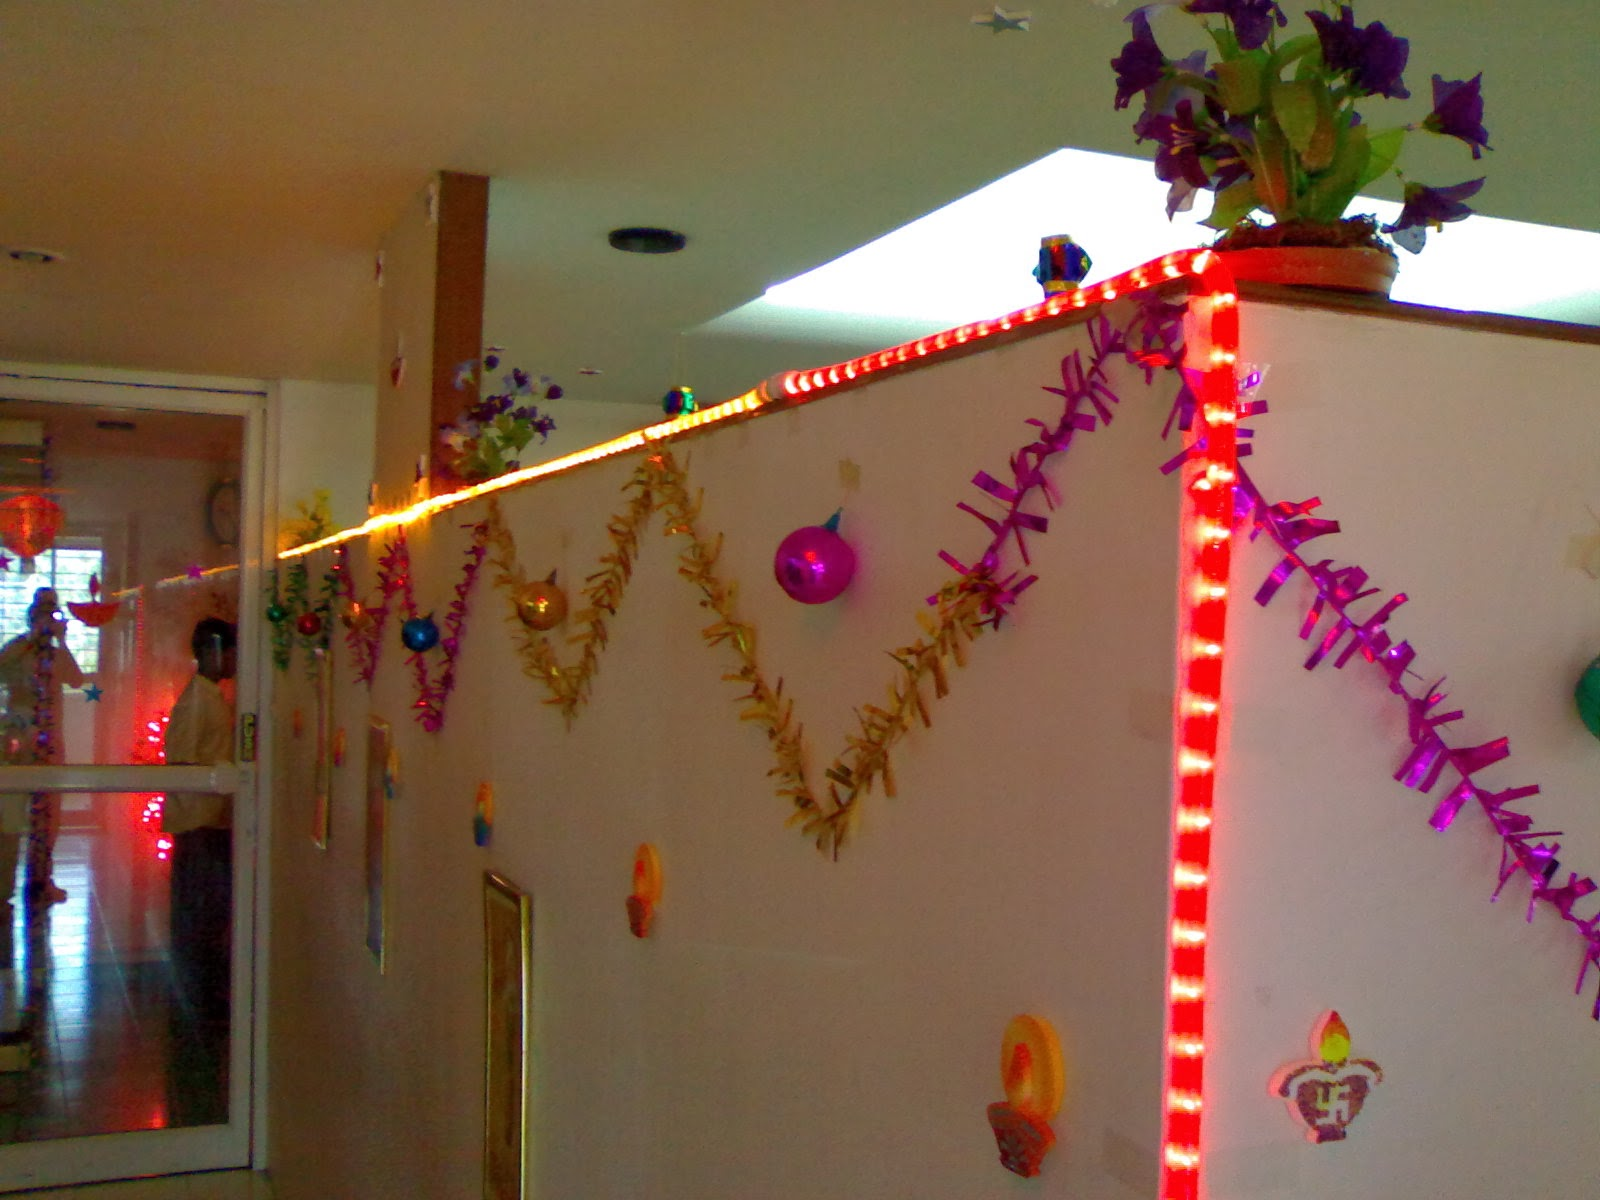 Diwali 2013 decoration ideas for home office diwali for Home decorations ideas for diwali